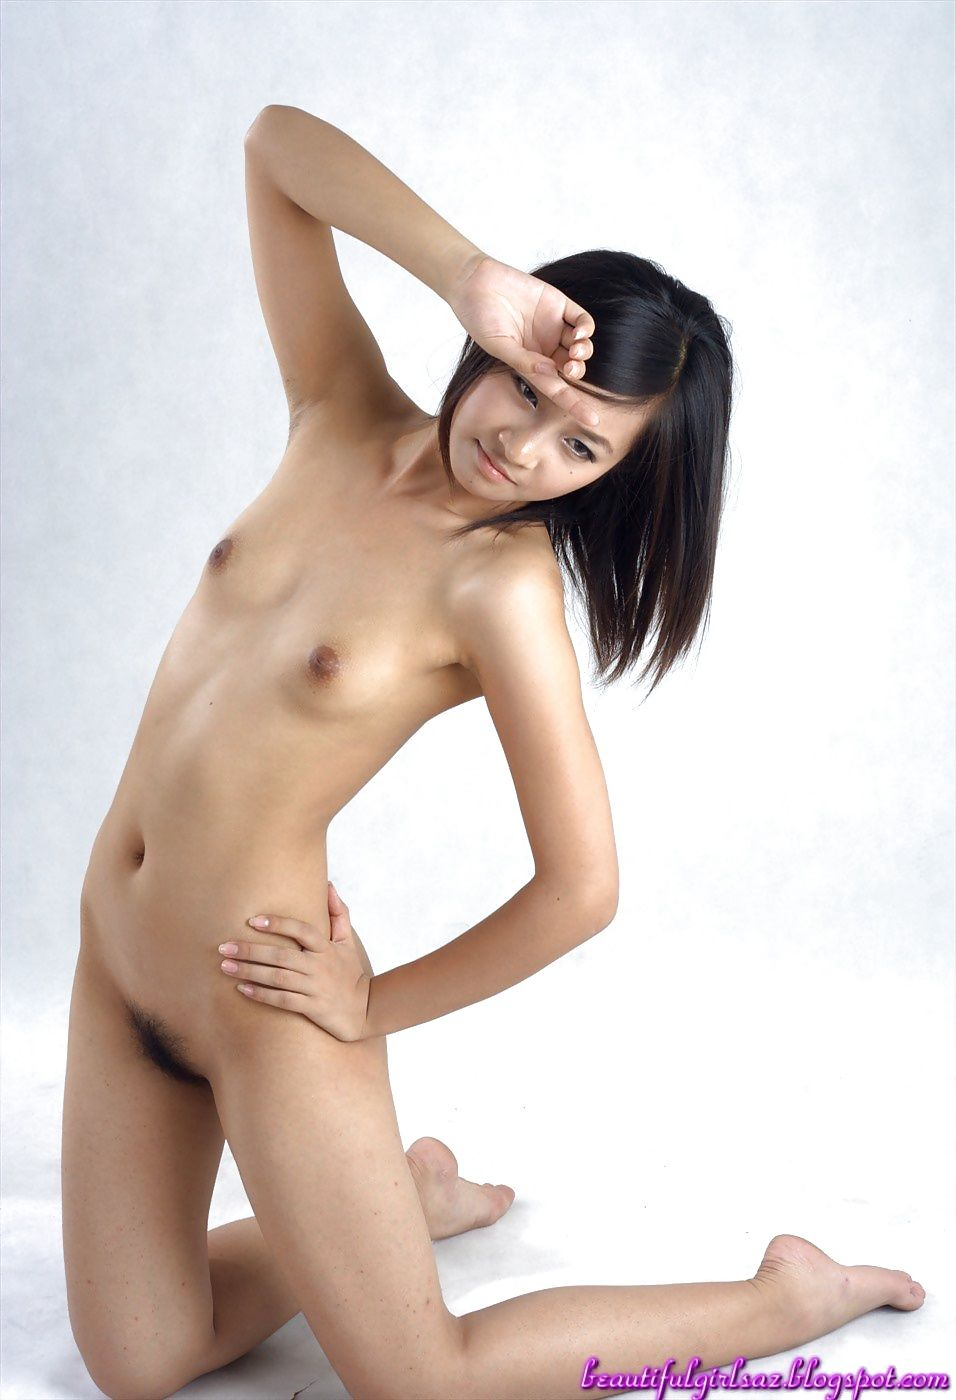 Asian pussy like a flower blossom babe